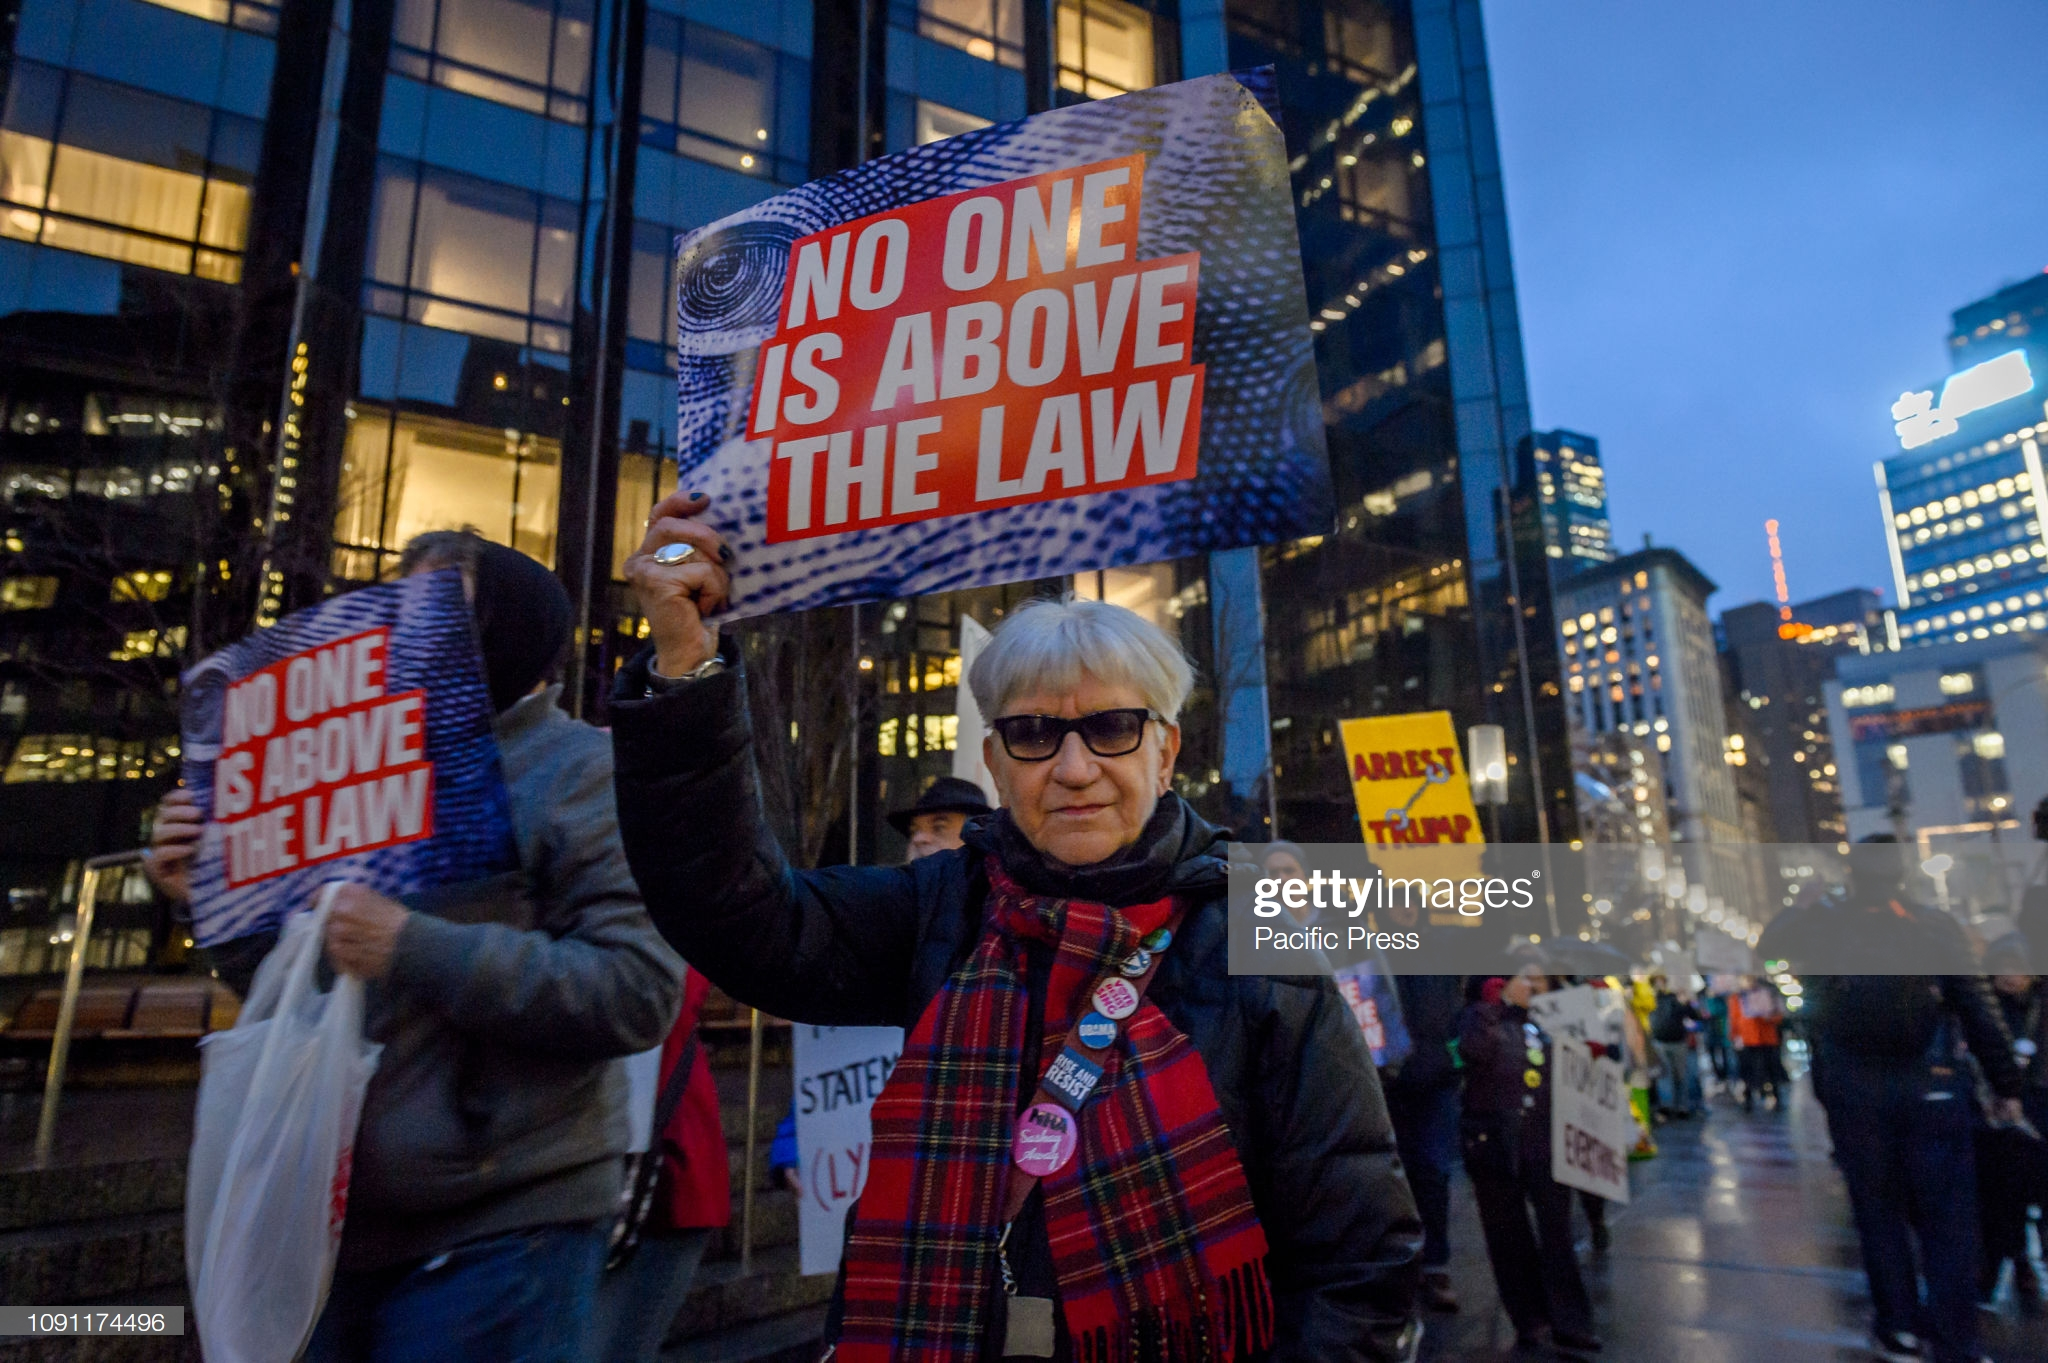 """TRUMP INTERNATIONAL HOTEL AT COLUMBUS CIRCLE, NEW YORK, UNITED STATES - 2019/01/29: Members of the activist group Rise and Resist held an """"Arrest Trump"""" protest outside the Trump International Hotel at Columbus Circle in Manhattan the day when the State of the Union was supposed to be delivered by Trump before the government shutdown. Rise and Resist demands the arrest of Trump for his multiple serious crimes against the people of the United States and other countries. (Photo by Erik McGregor/Pacific Press/LightRocket via Getty Images)"""